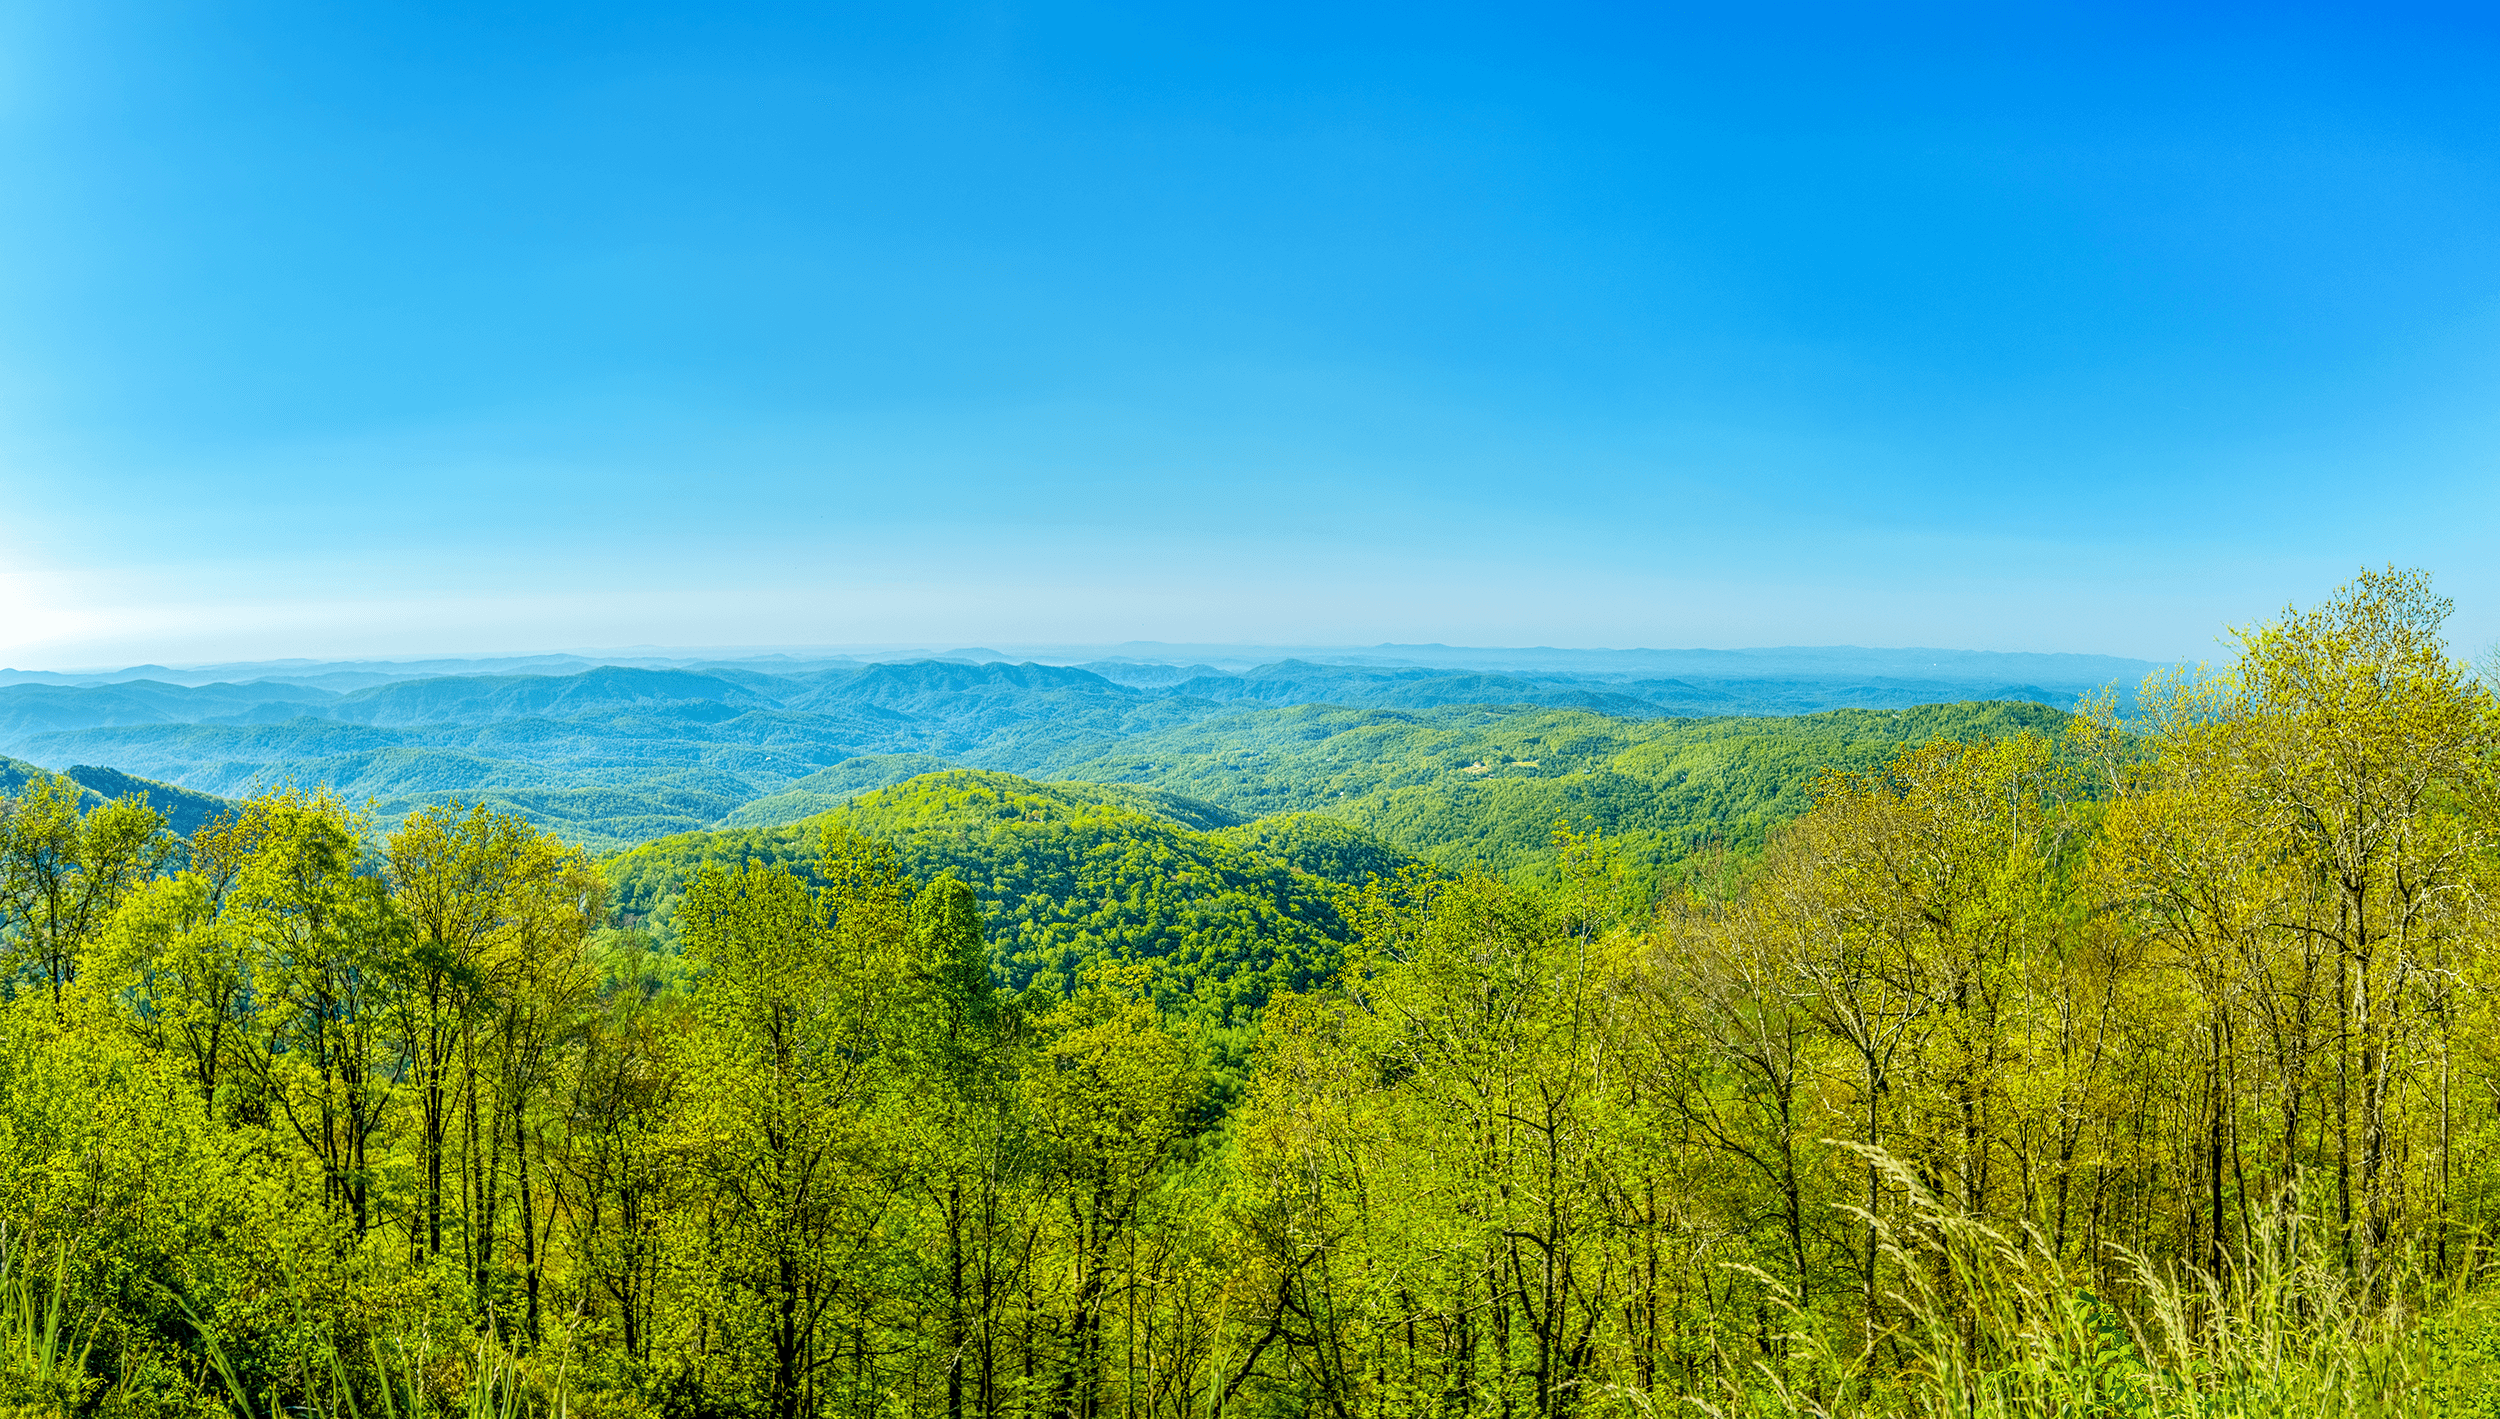 The east-facing  Yadkin Valley Overlook  is a small pull-off at Milepost 289.8 on the  Blue Ridge Parkway . From an elevation of 3,830 feet (1,167 meters), the overlook offers sweeping panoramic views of the Yadkin Valley.